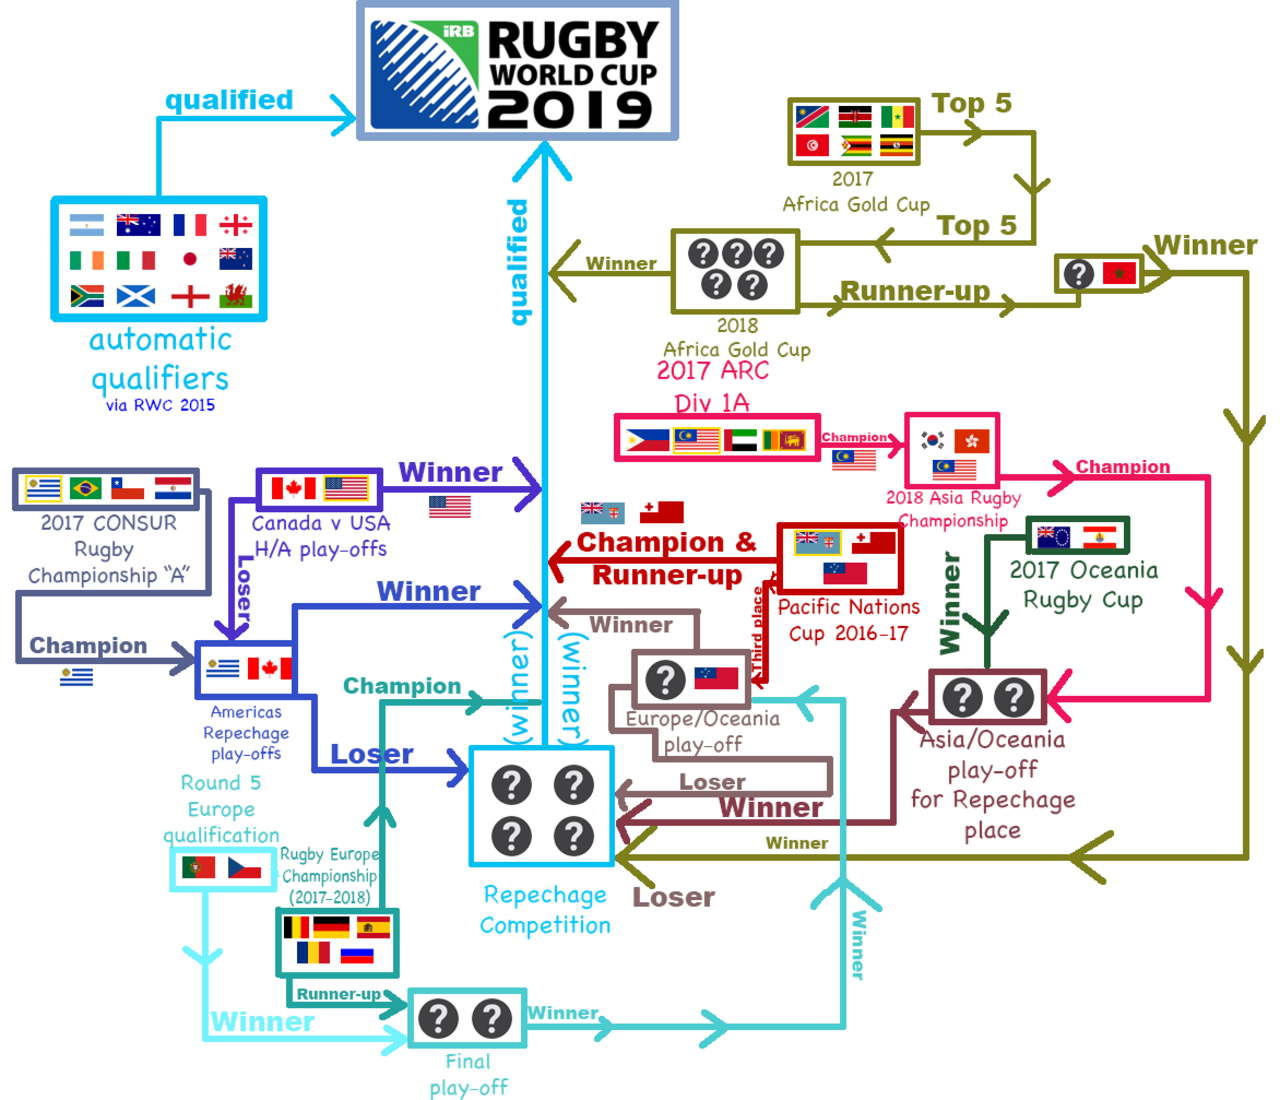 1280px-Rugby_World_Cup_2019_Qualification_illustrated.png